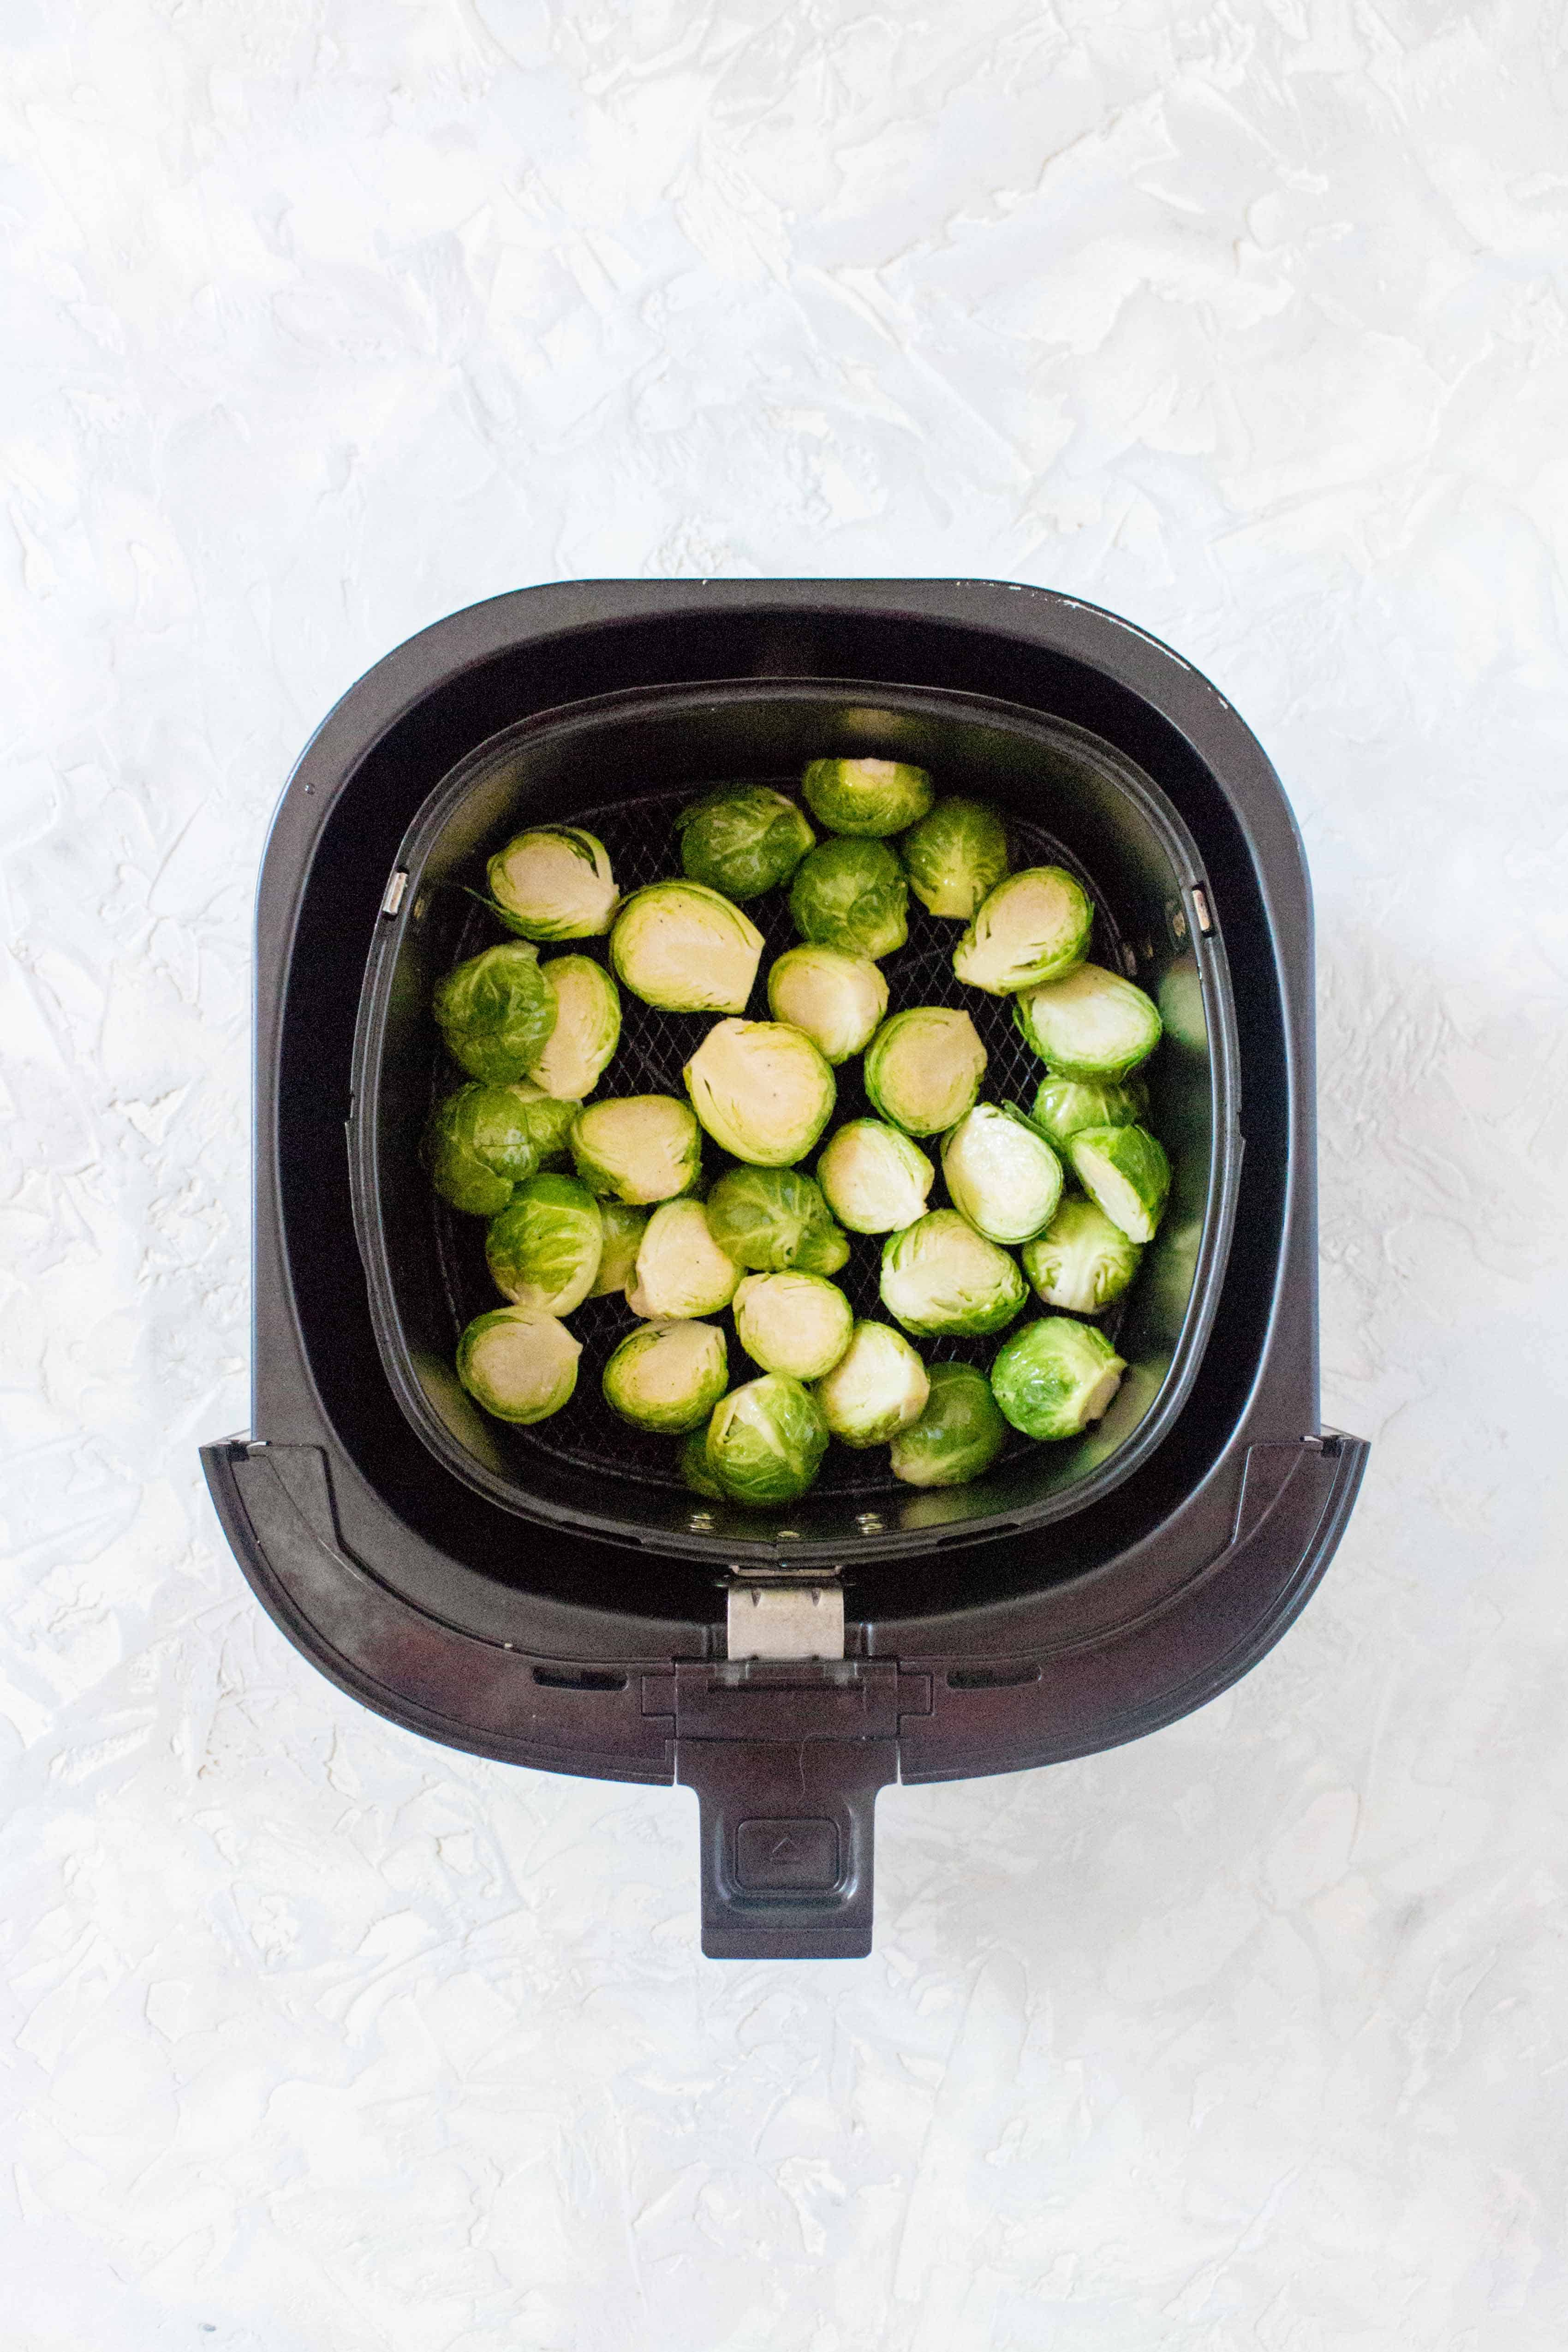 how to use an air fryer to make brussels sprouts